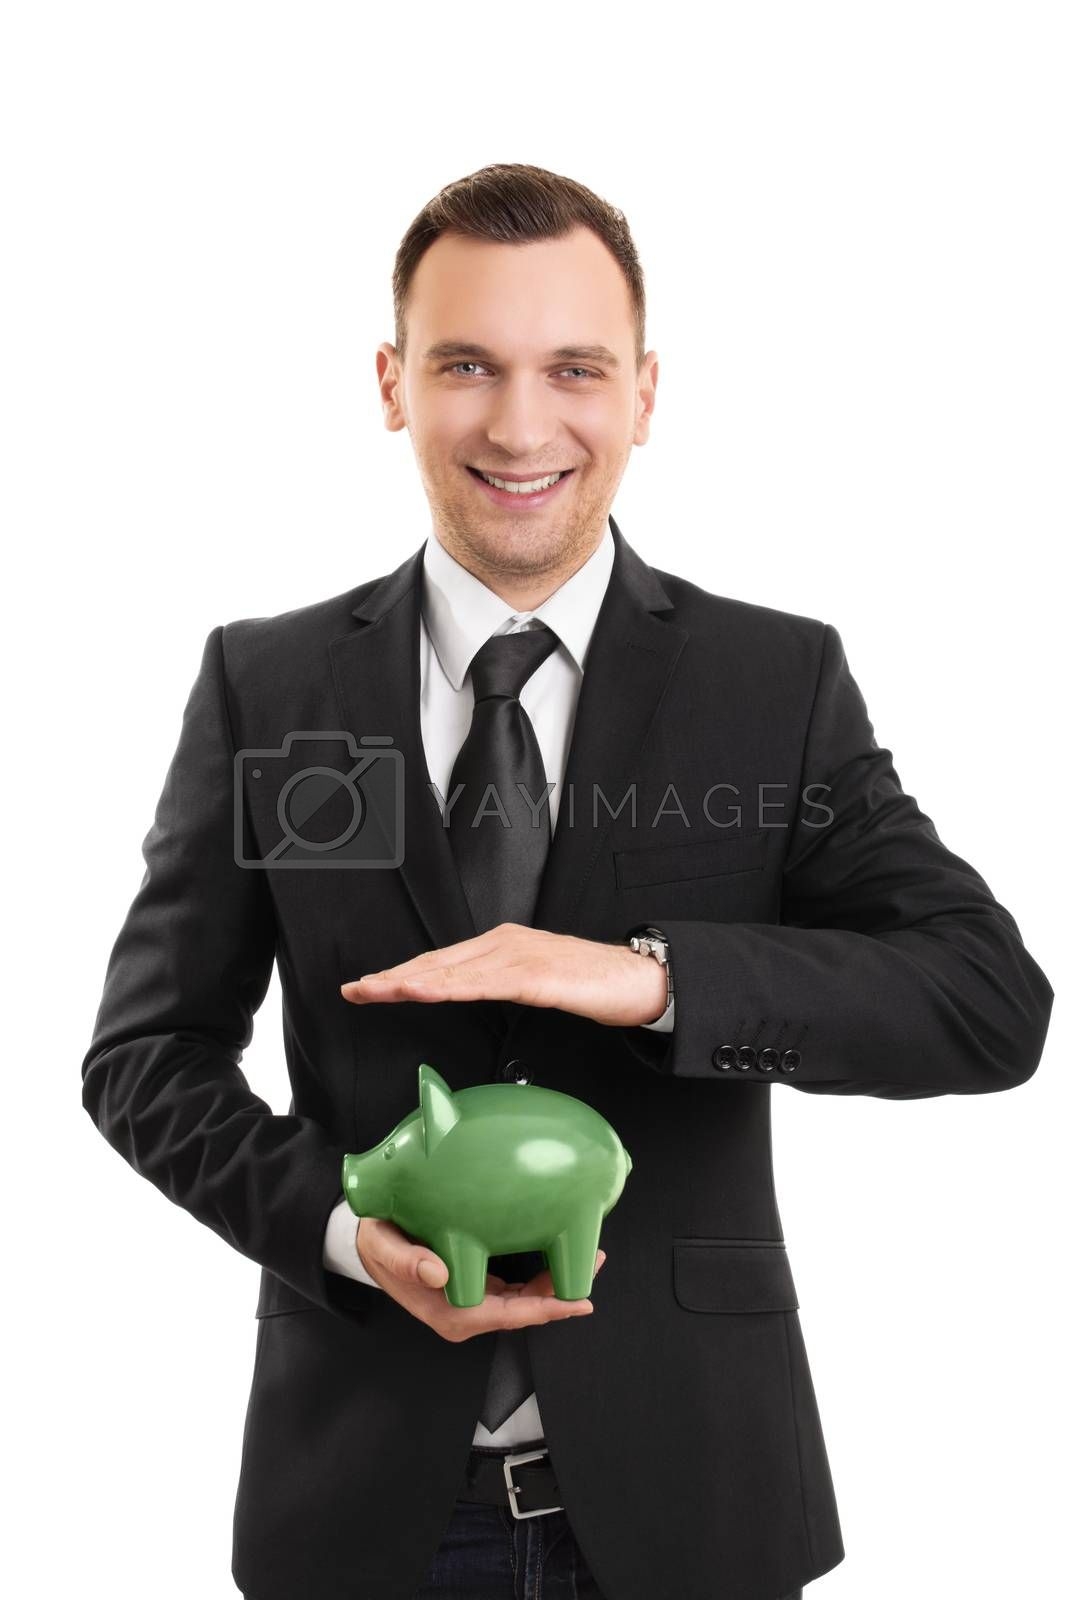 A portrait of a businessman holding a piggy bank, isolated on white background.